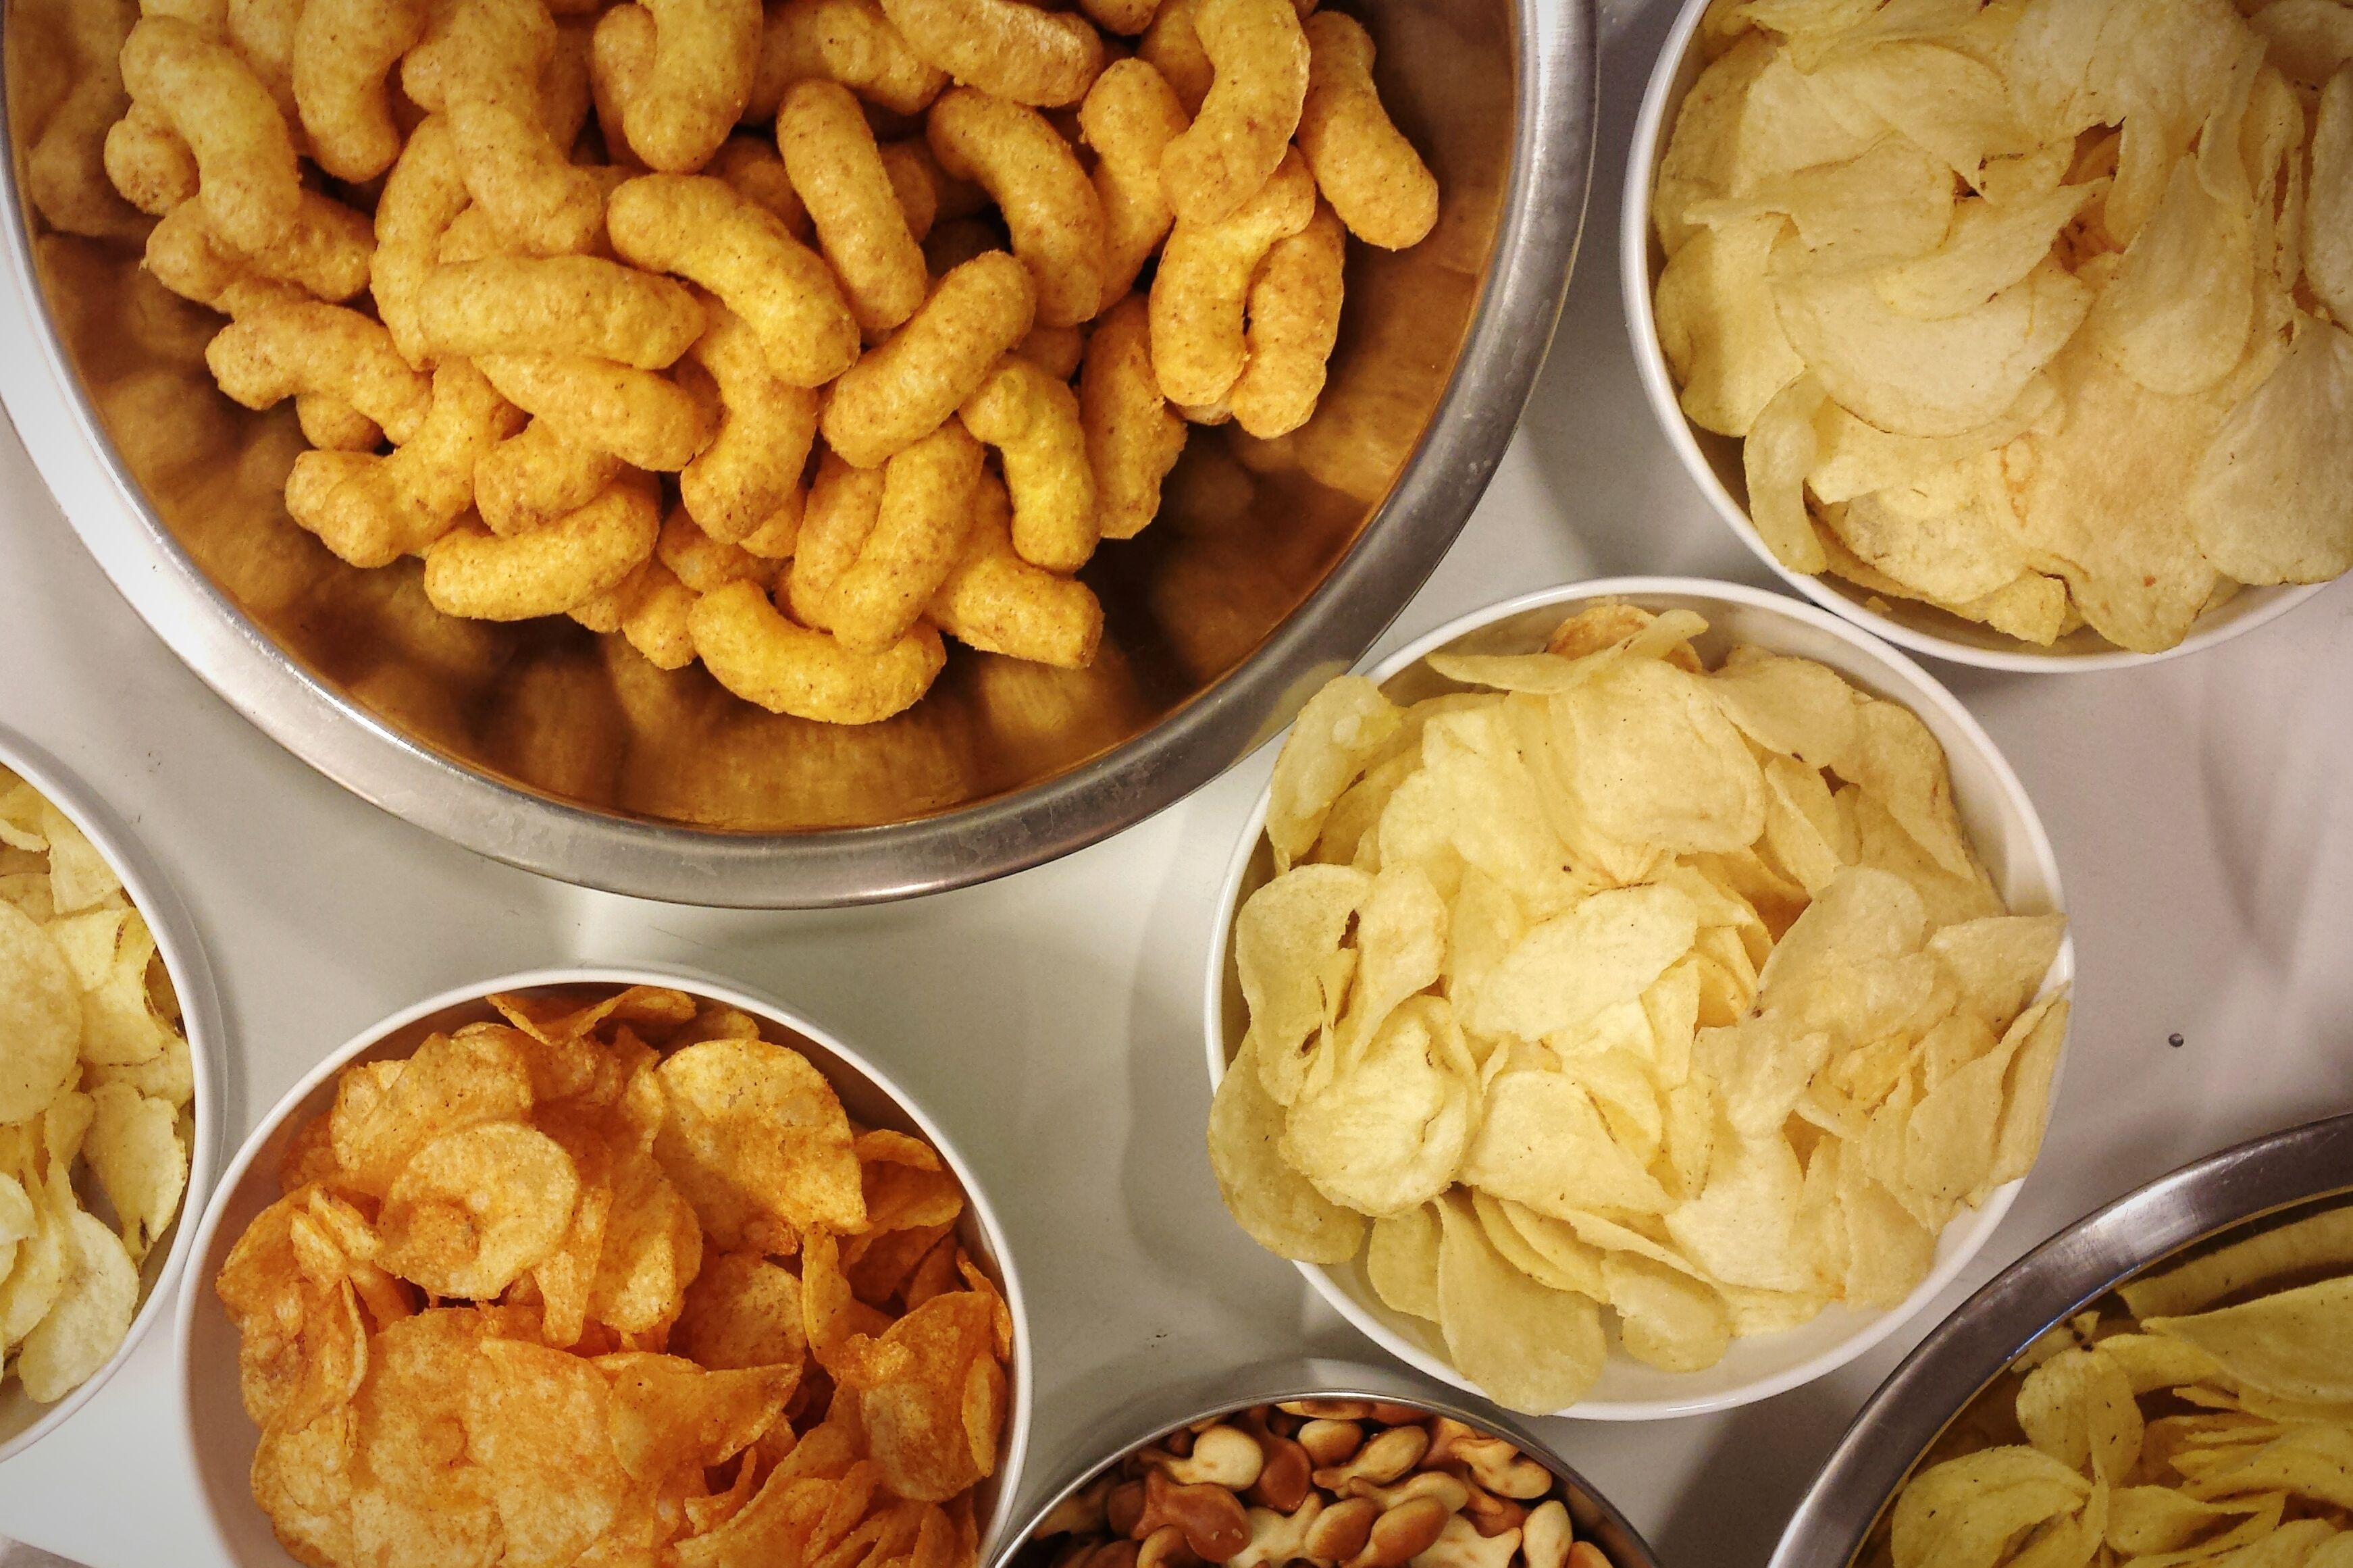 bowls of chips and snacks